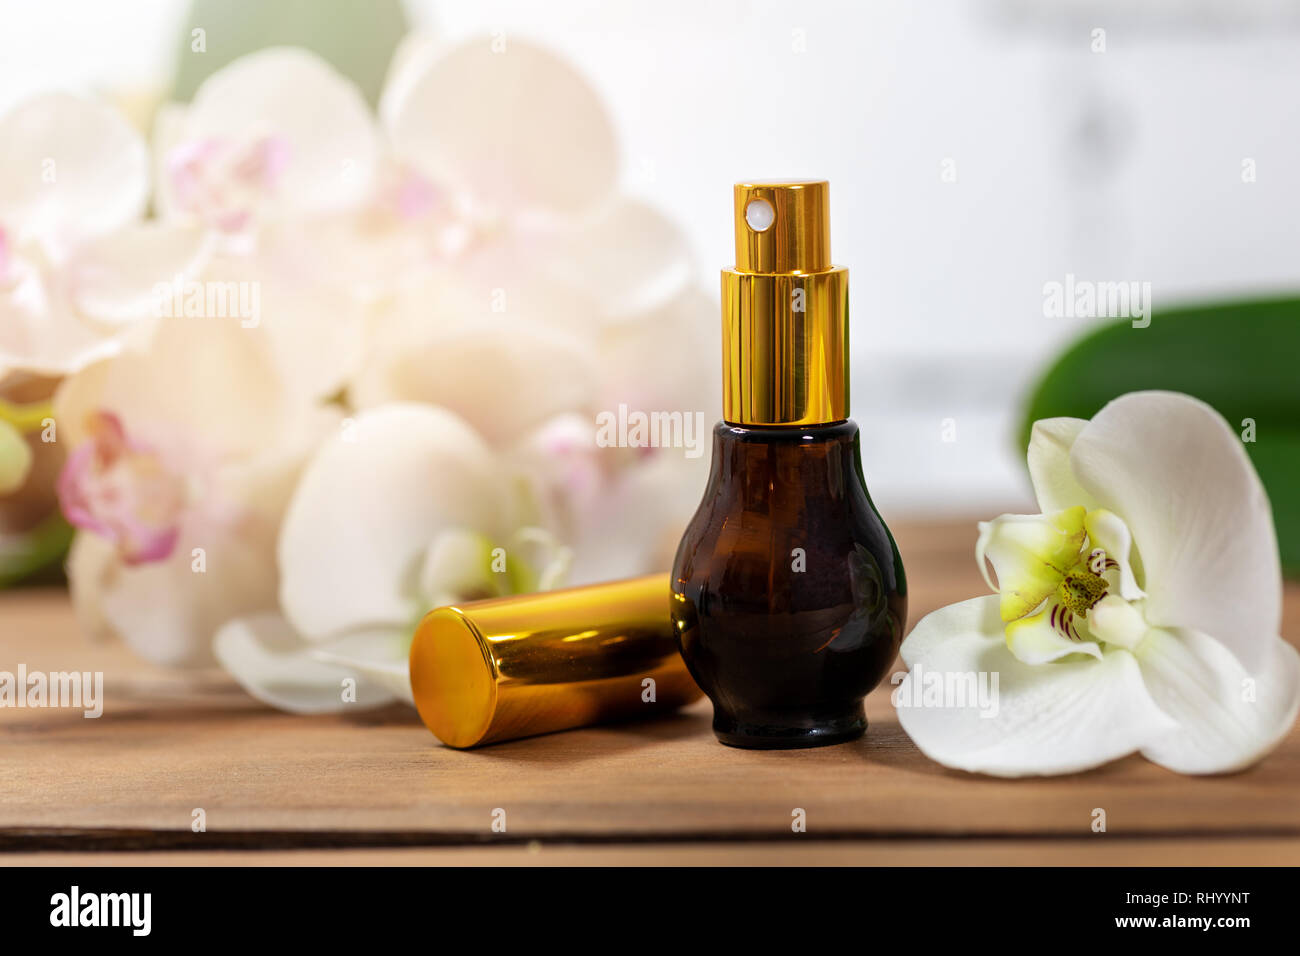 floral scent perfume atomizer with orchid flower - Stock Image